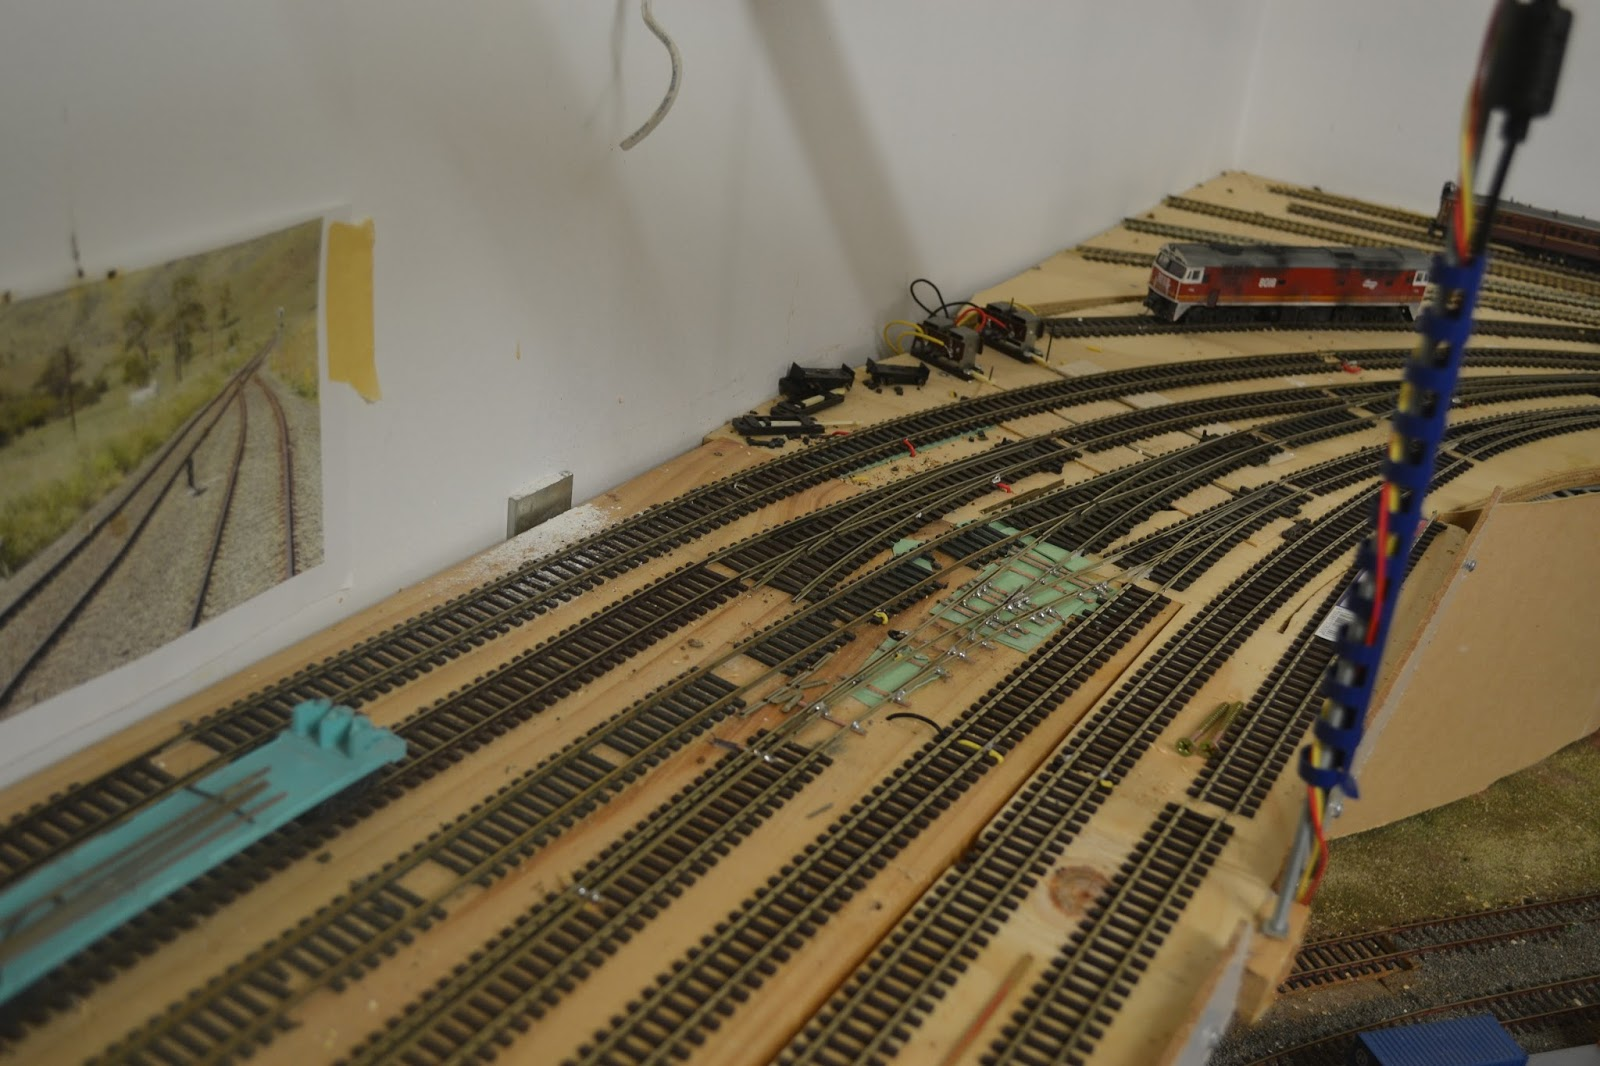 Typical Track Section Showing Insulated Joiners And Feeds To The Power